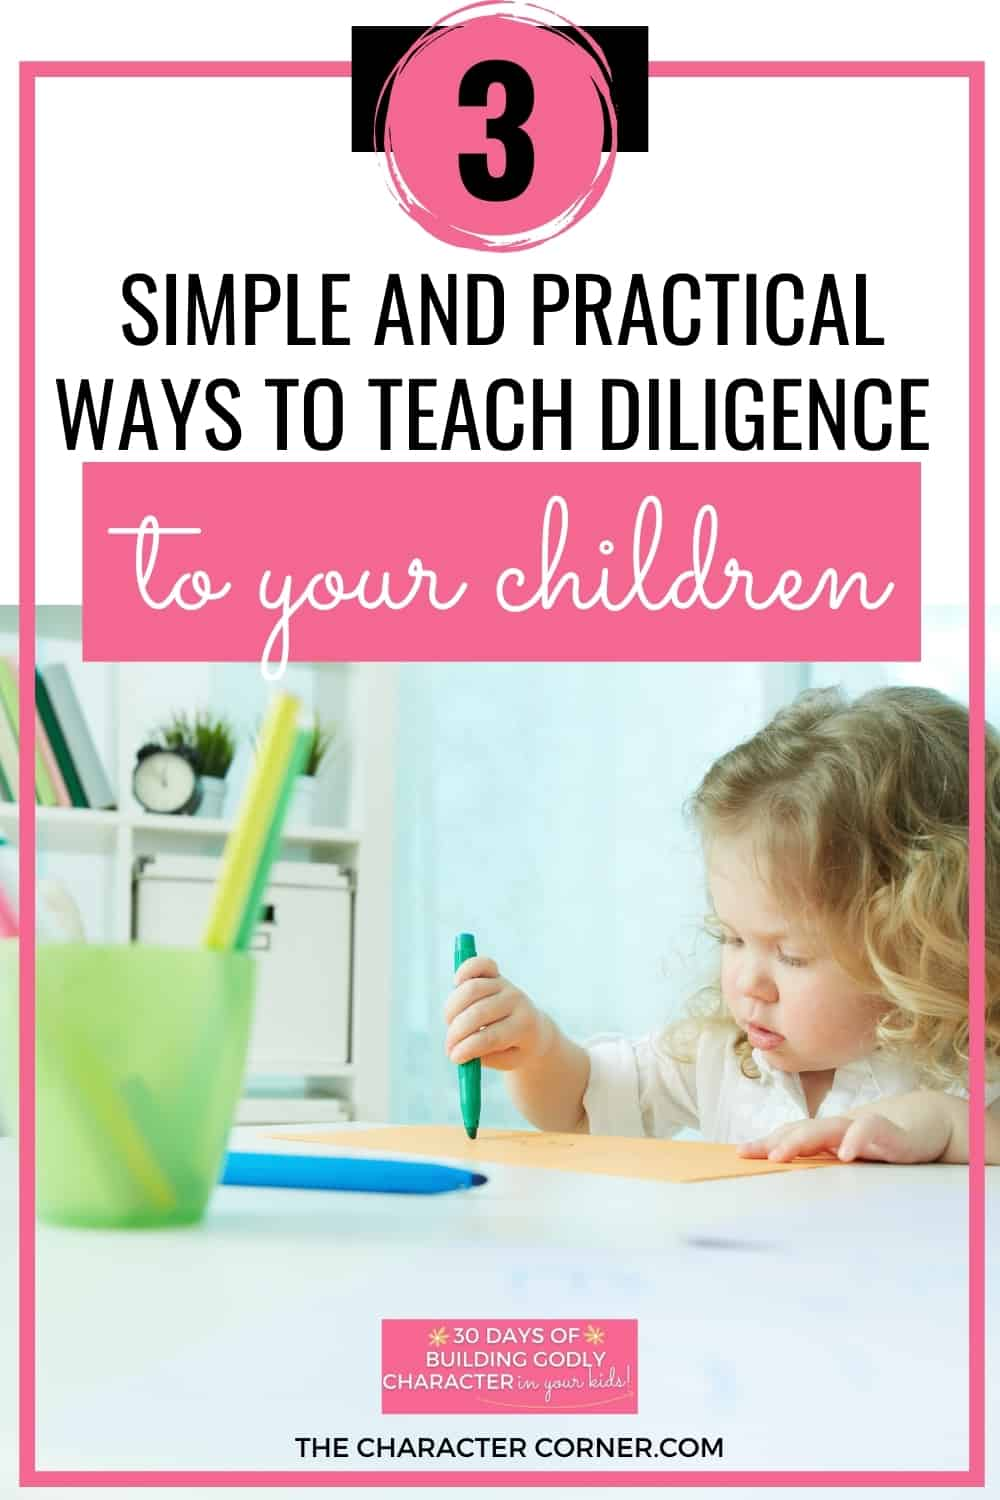 Child learning text on image reads: Simple and Practical Ways to Teach Diligence to your children